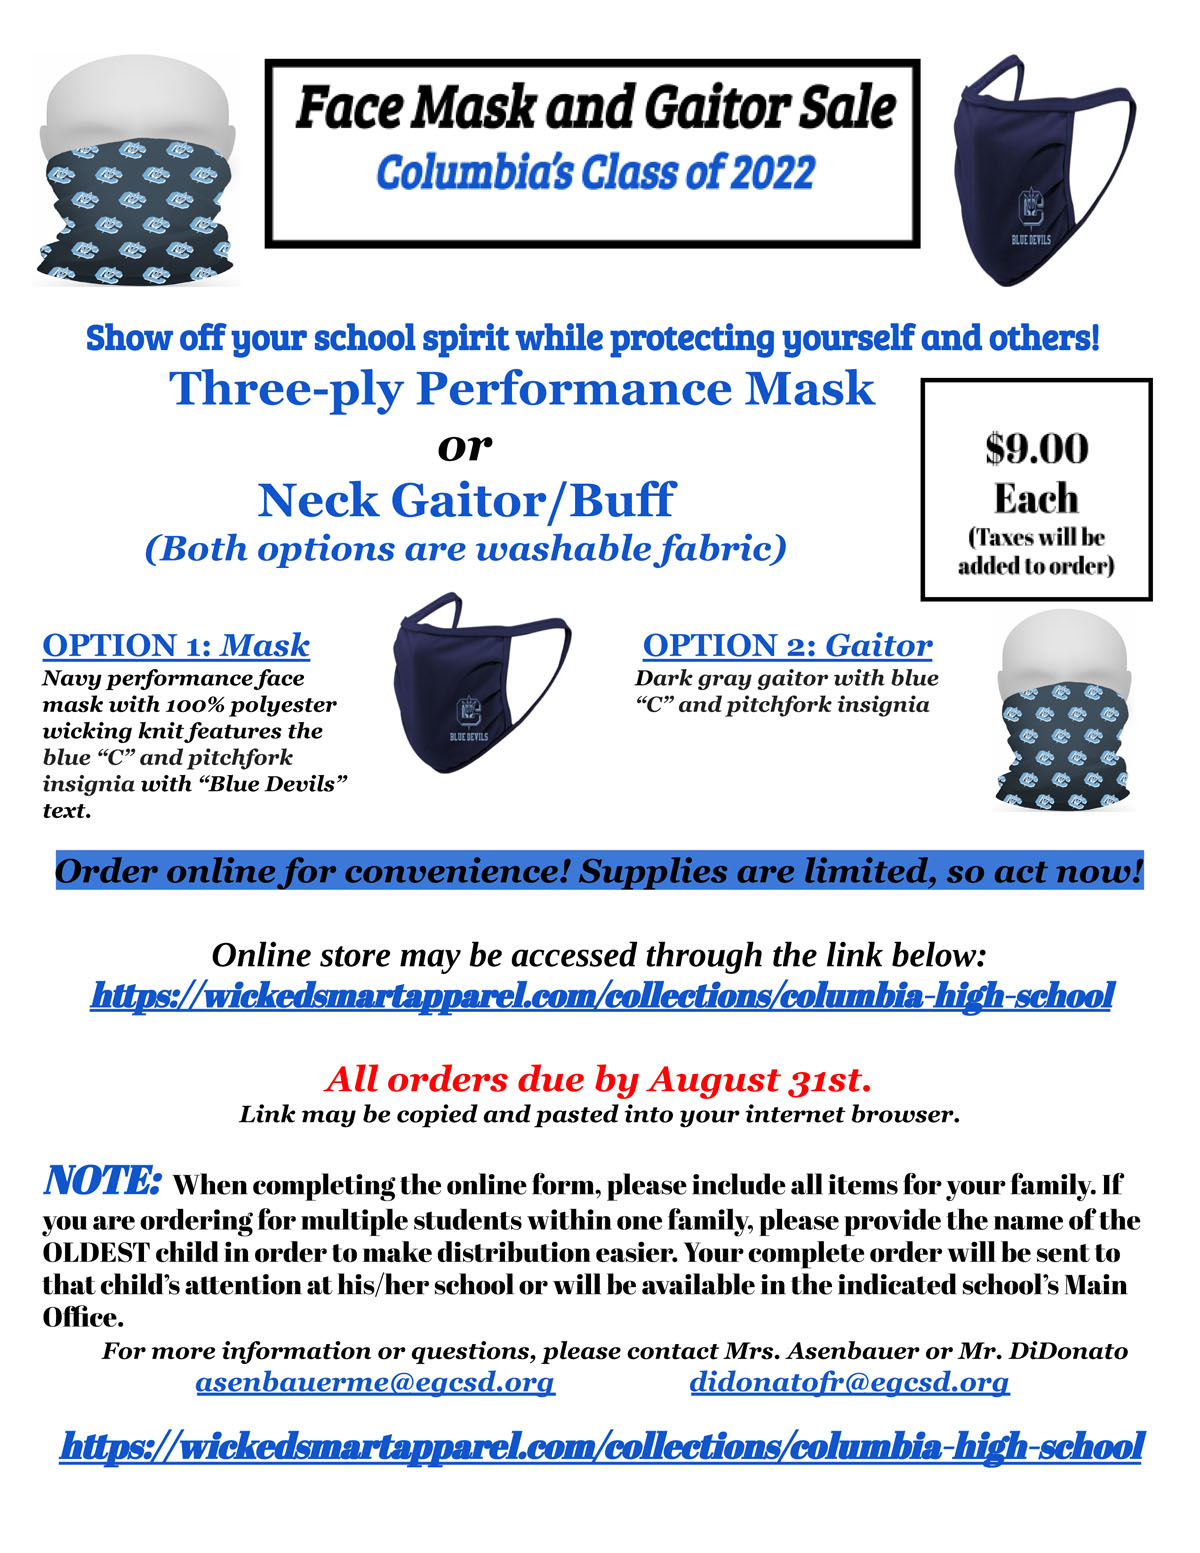 Face Mask and Gaitor Sale Flyer